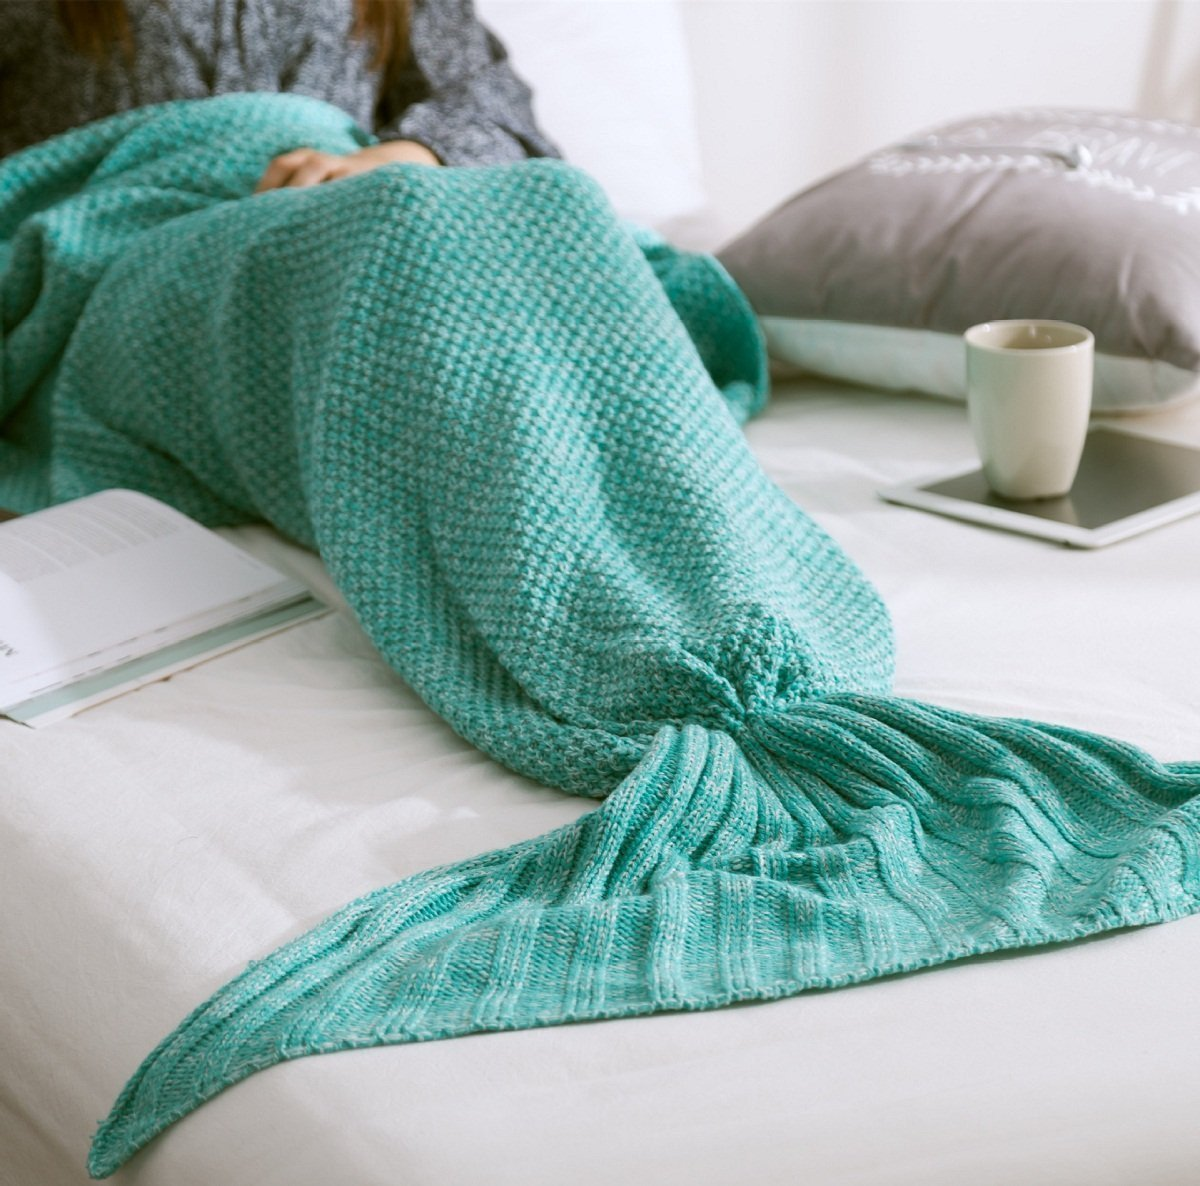 The Amazing Mermaid Blanket - w/ Free Shipping!